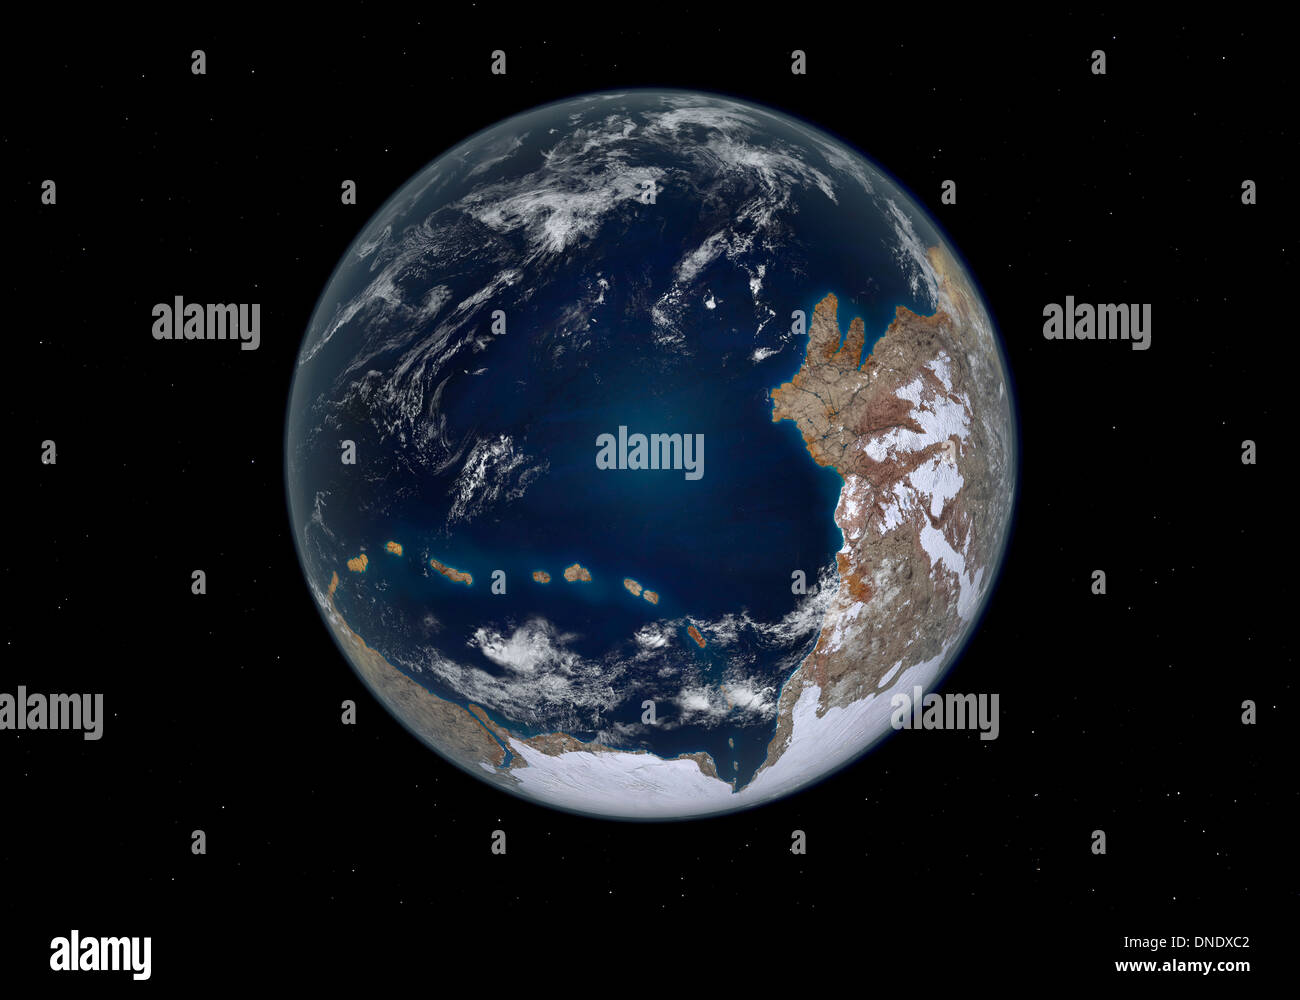 Planet Earth 600 million years ago following the Cryogenian period. - Stock Image